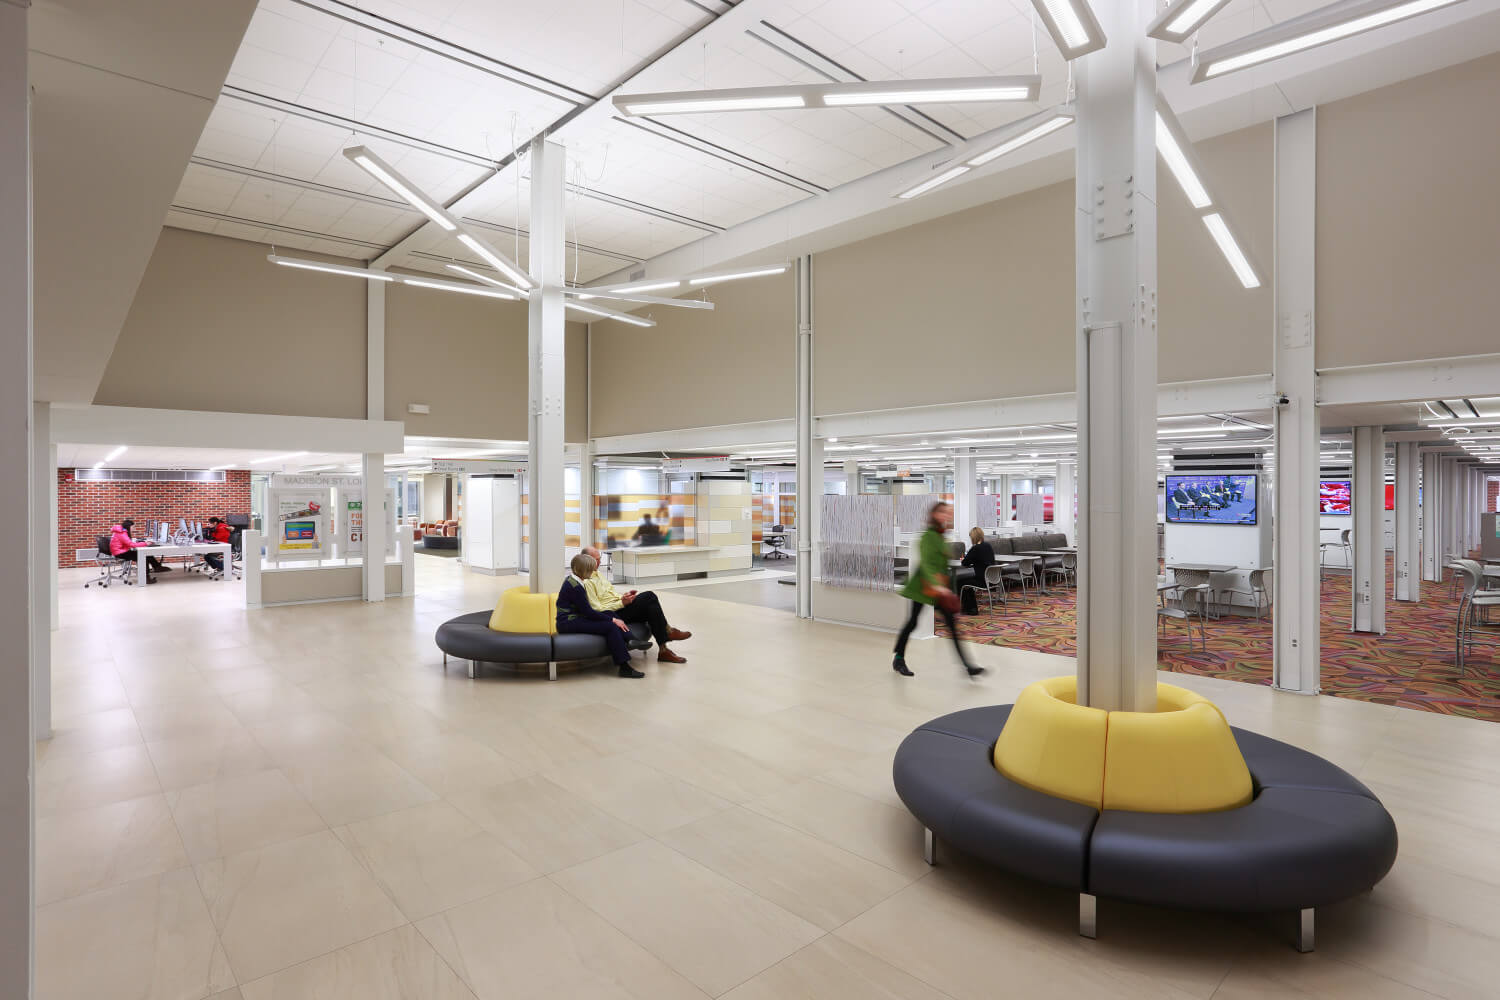 University of Iowa, Library Learning Commons